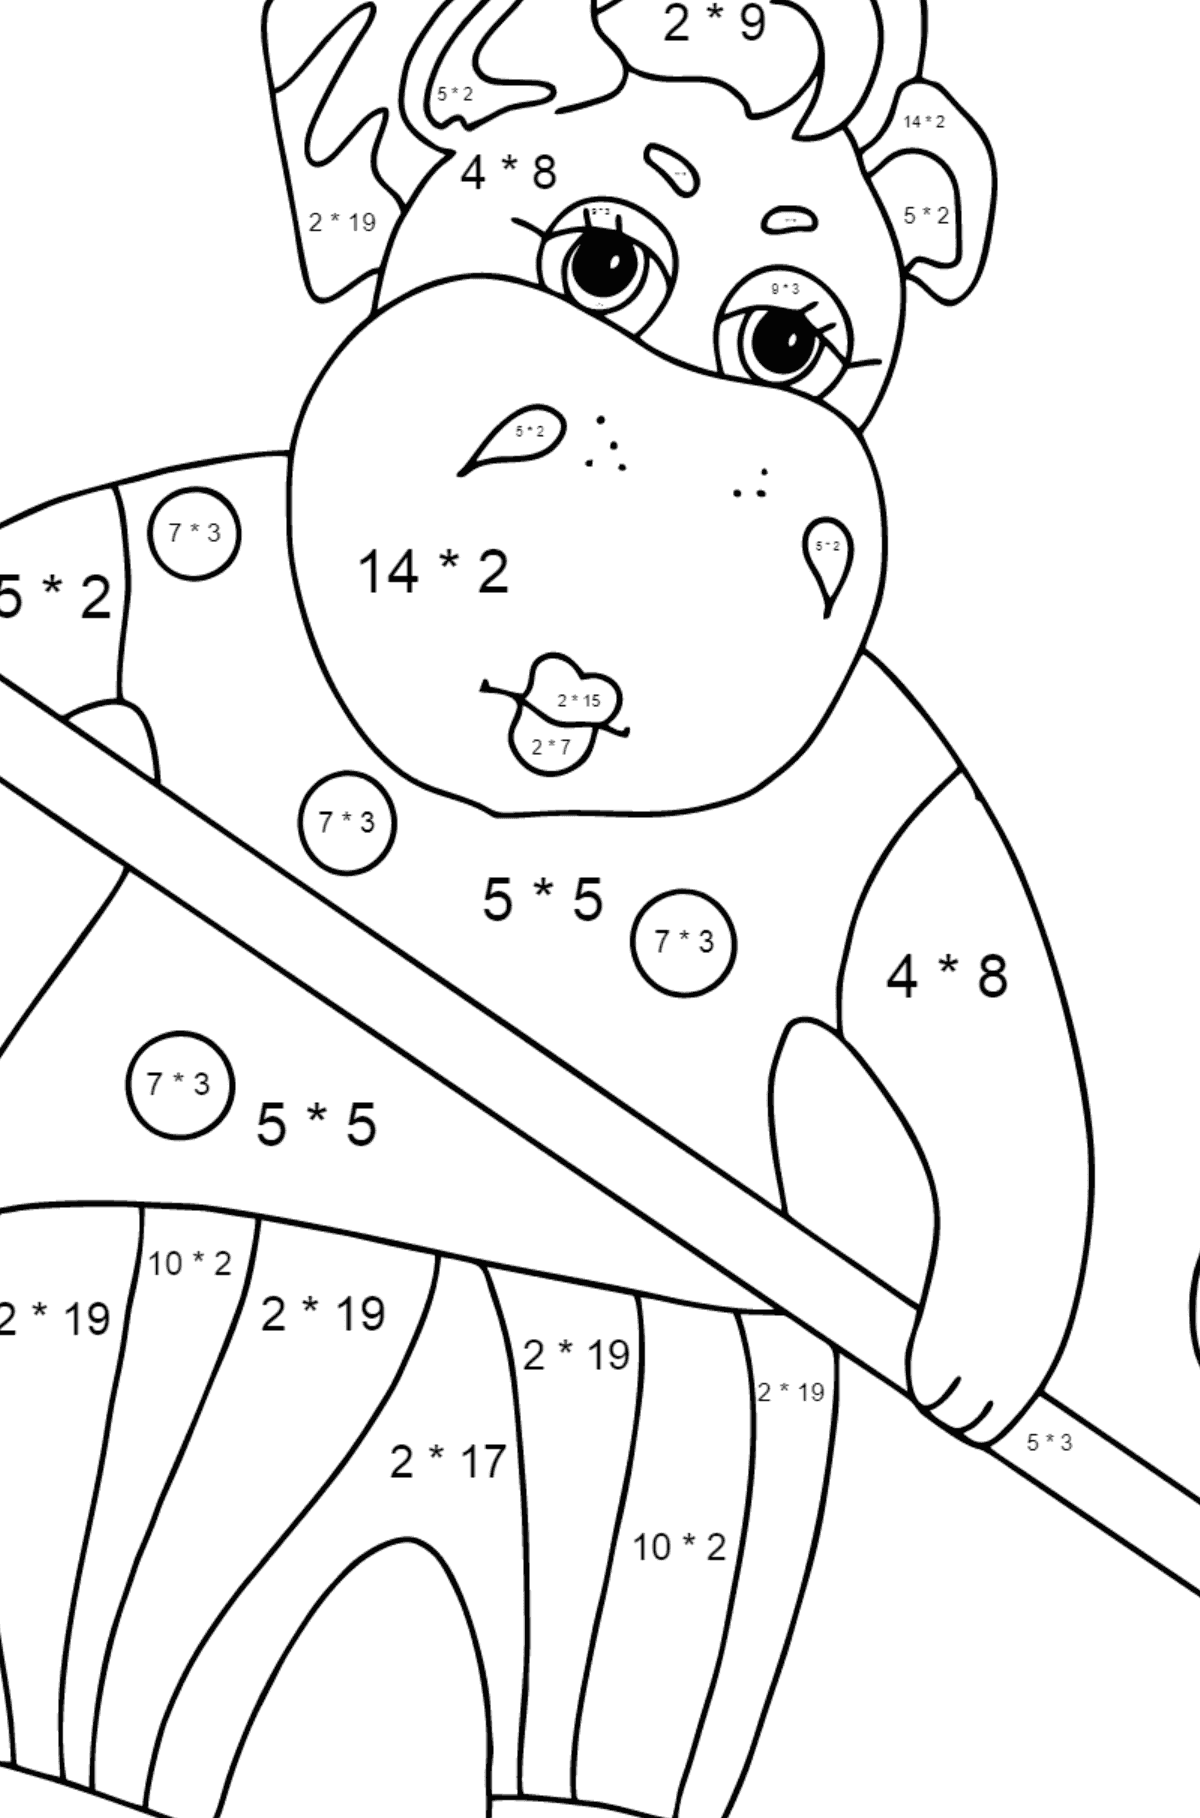 Coloring Page - A Hippo is Sweeping Autumn Leaves for Children  - Color by Number Multiplication